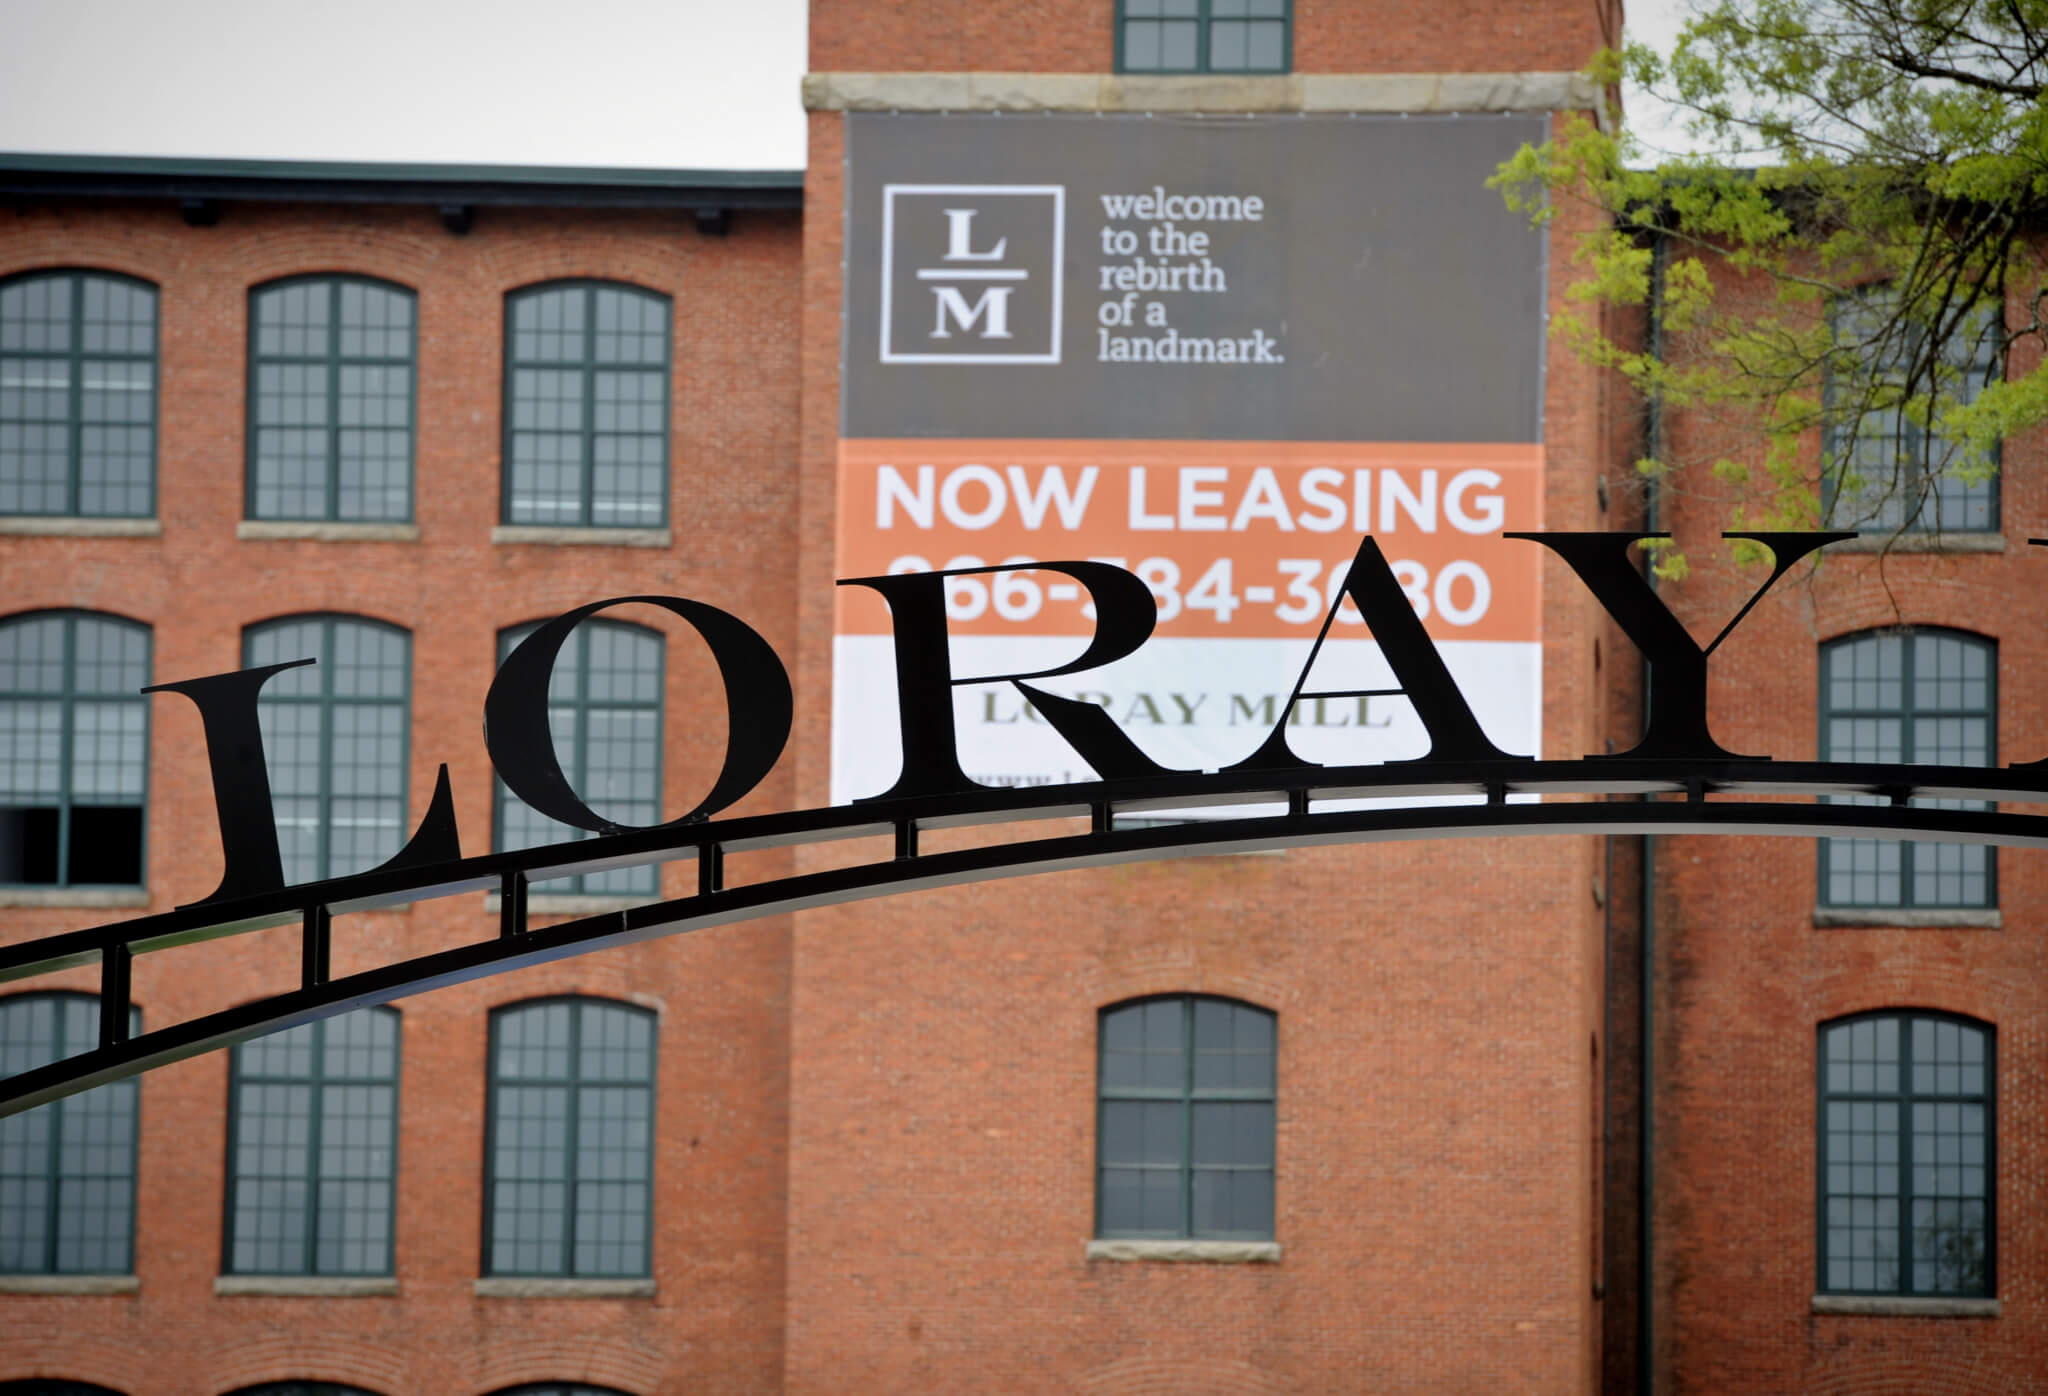 The entrance to renovated Loray Mill